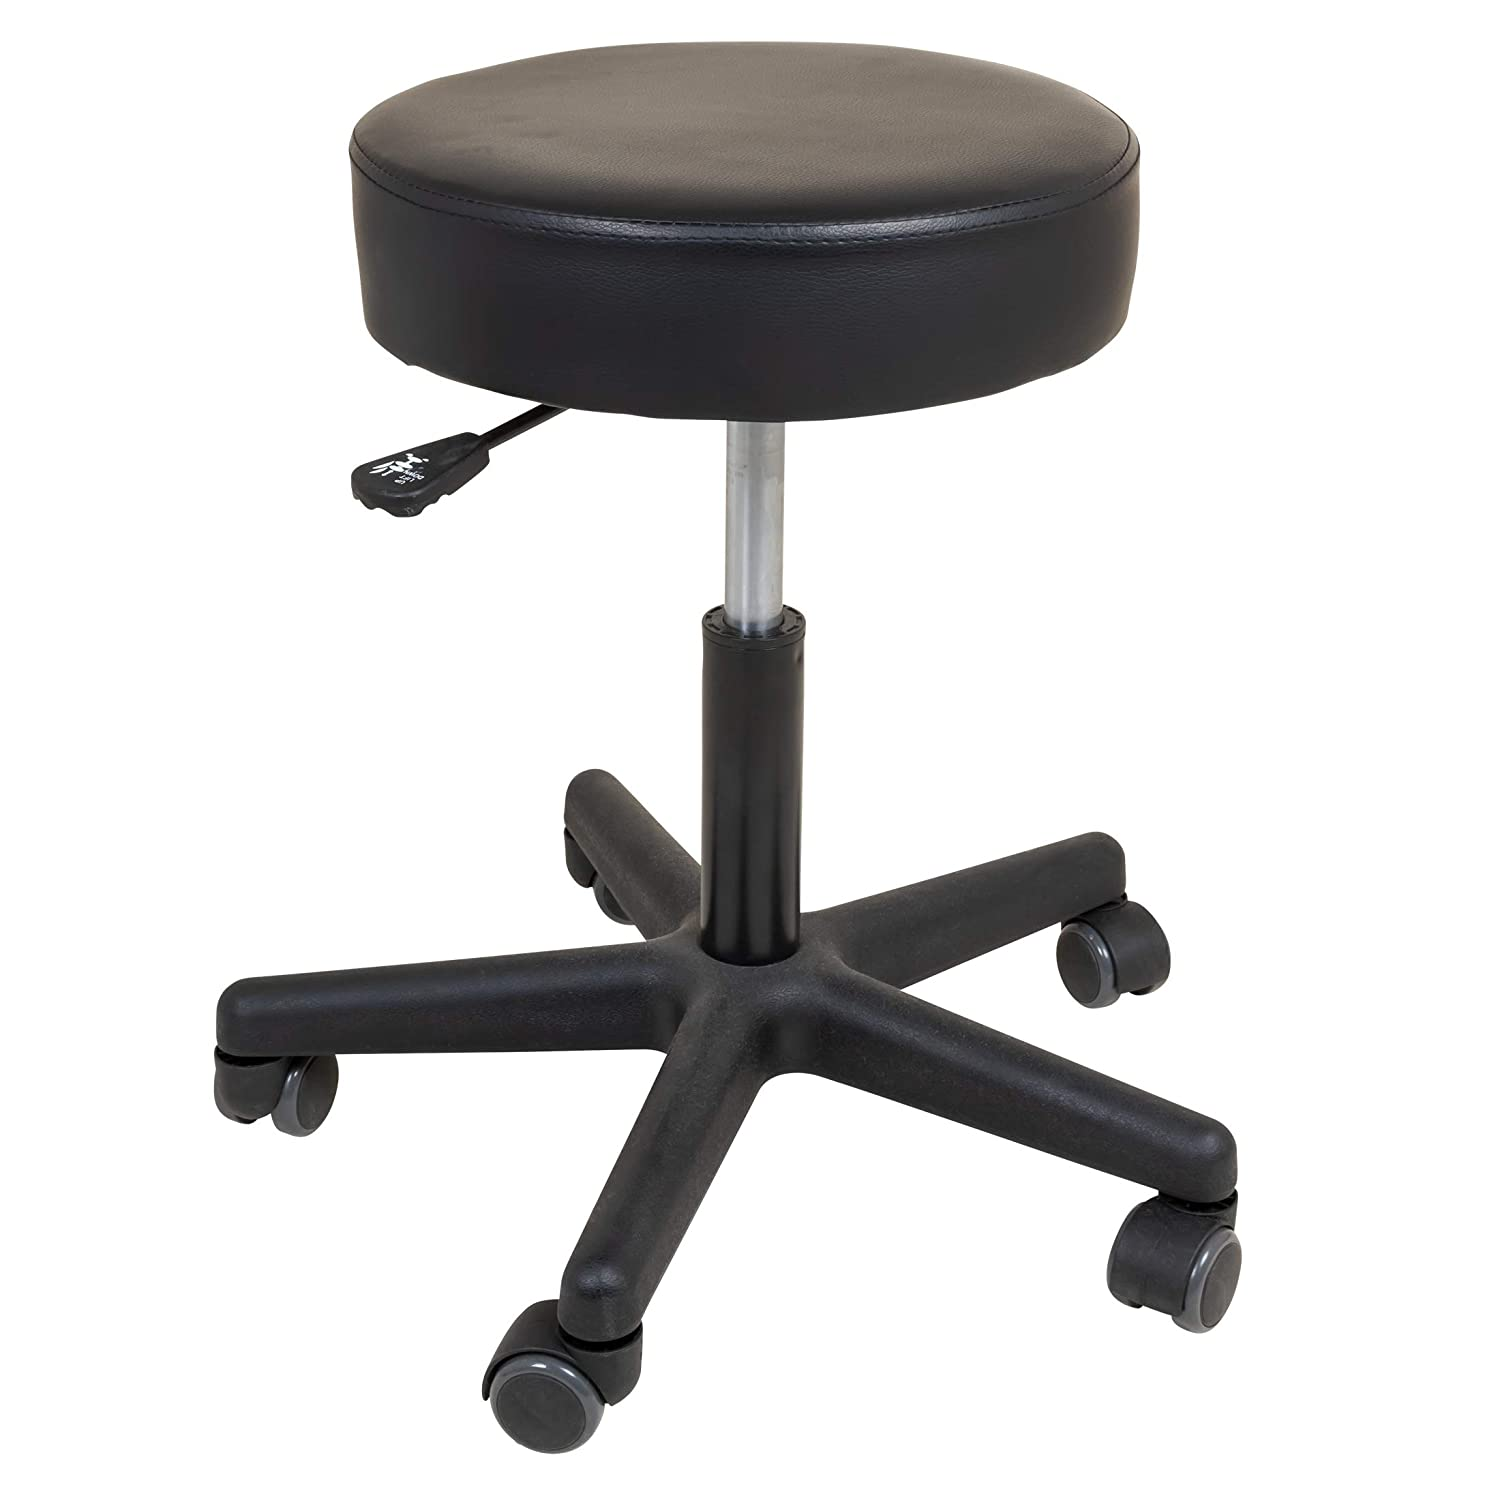 Roscoe Medical Rolling Stool - Stool With Wheels - Round Adjustable Work Stool, For Work, Office, Desk, Salon, Drafting, Spa